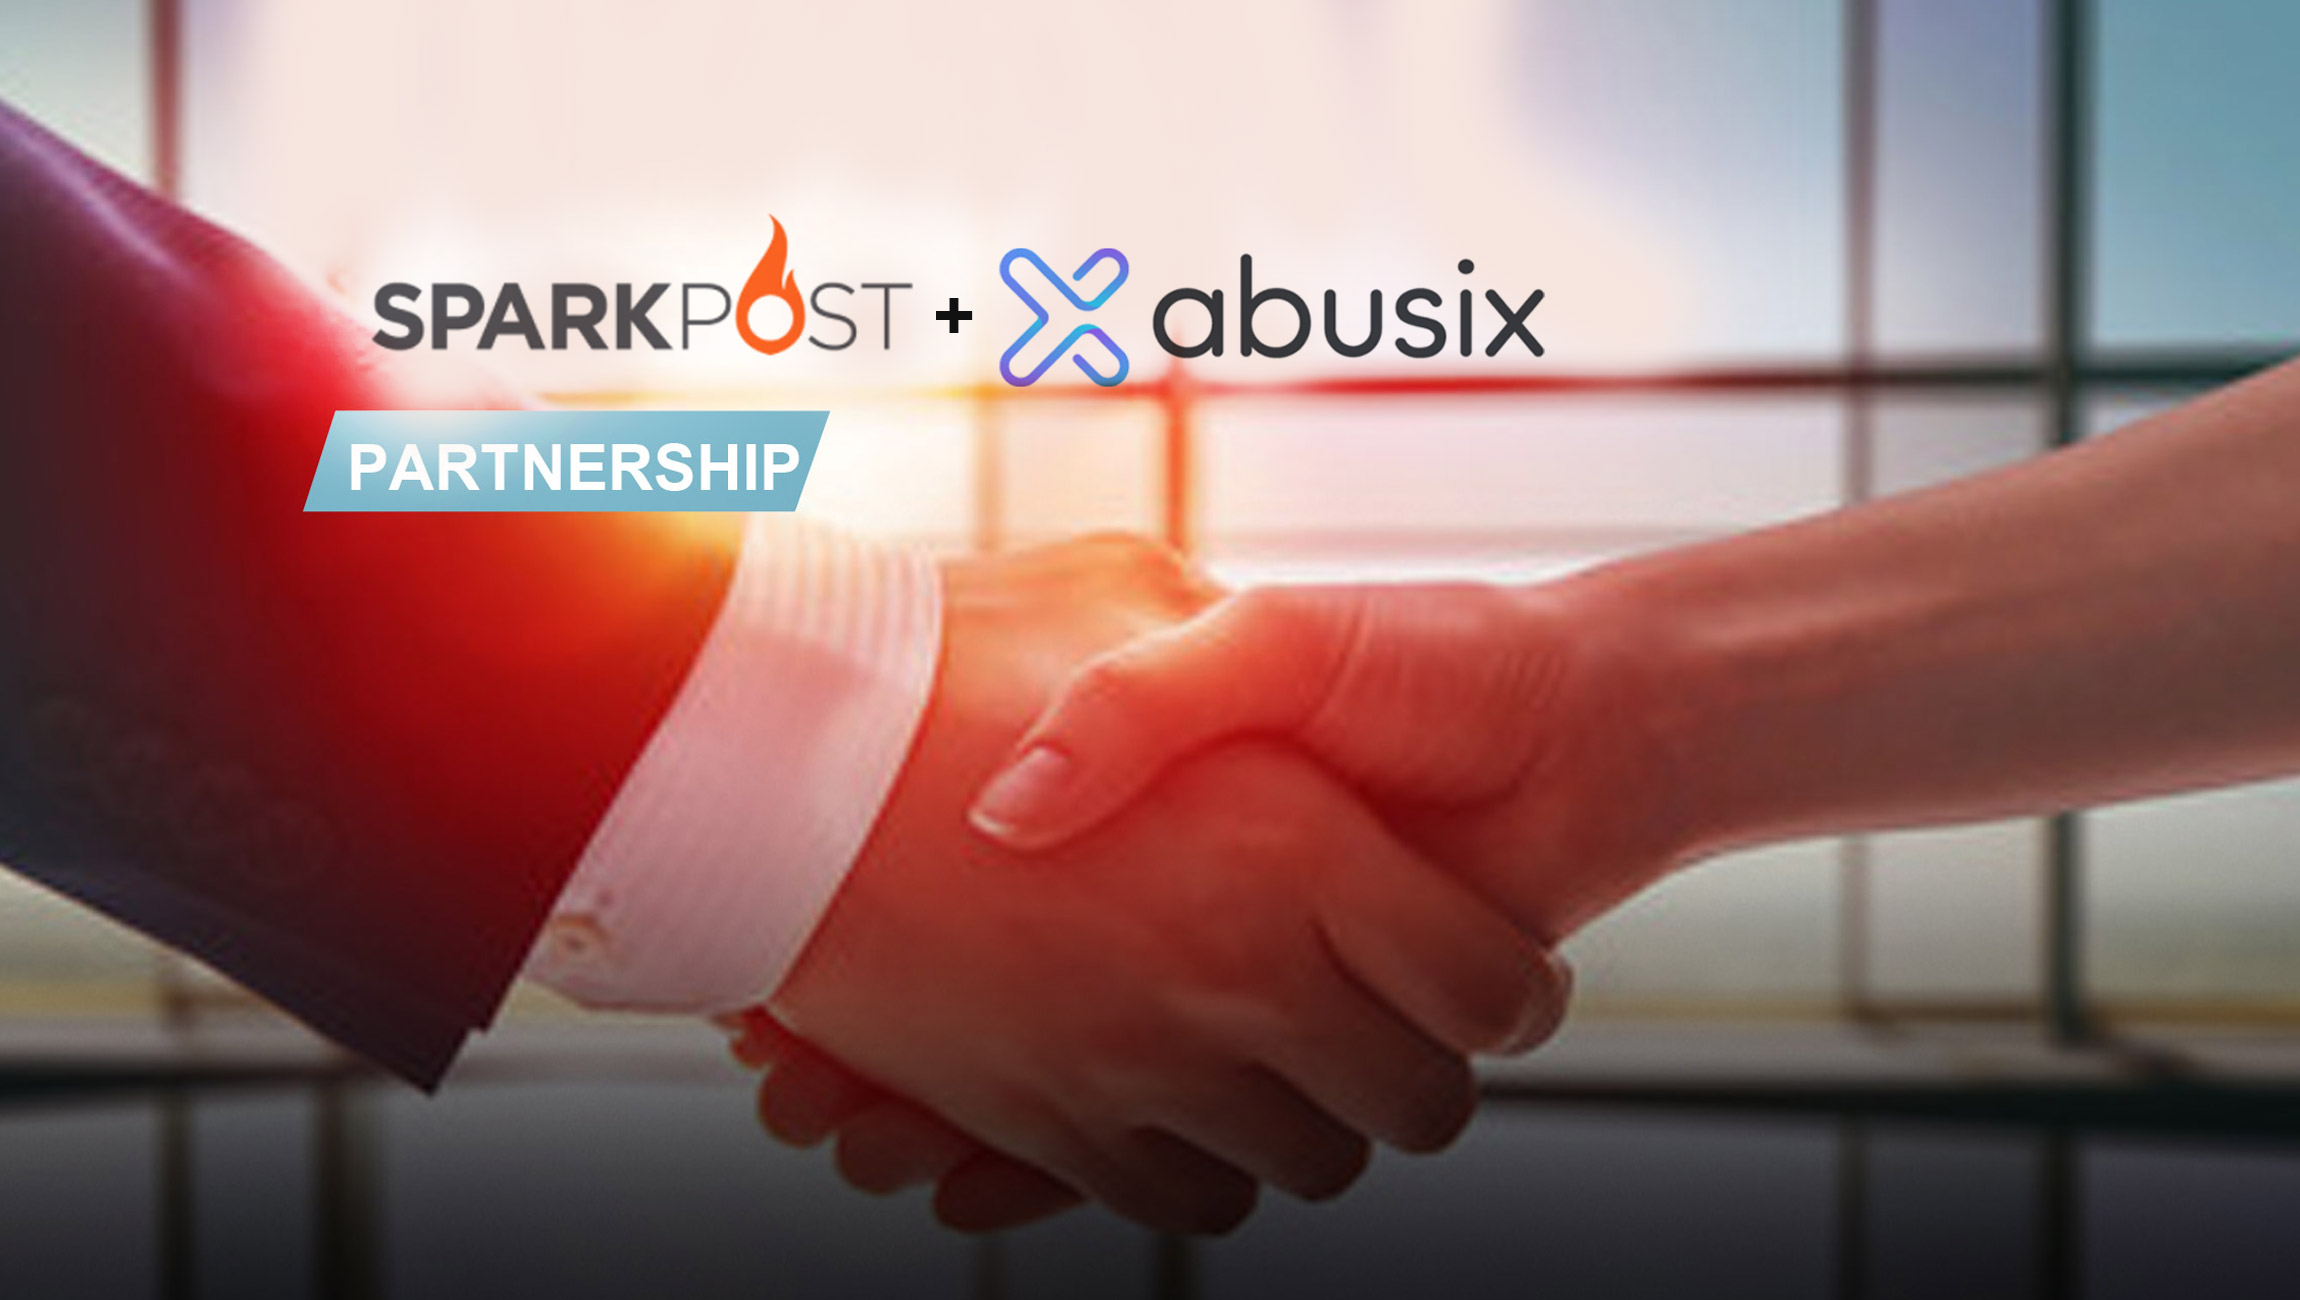 SparkPost And Abusix Expand Partnership To Strengthen Email Deliverability